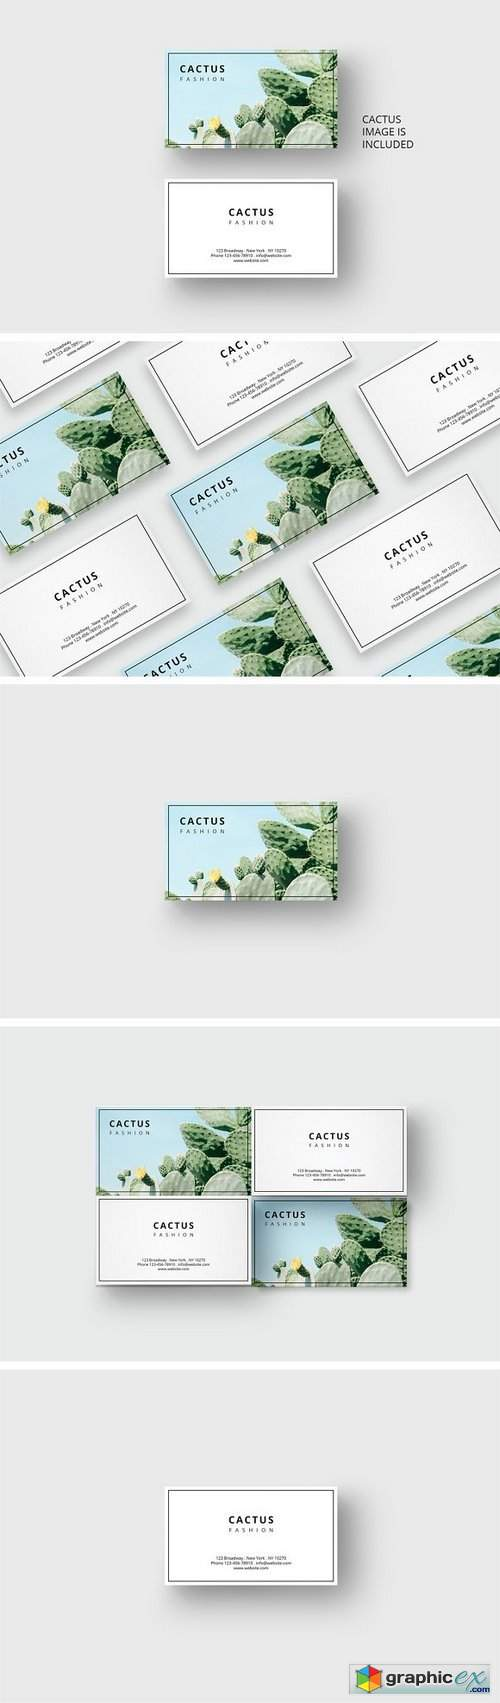 Cactus business card template 1689339